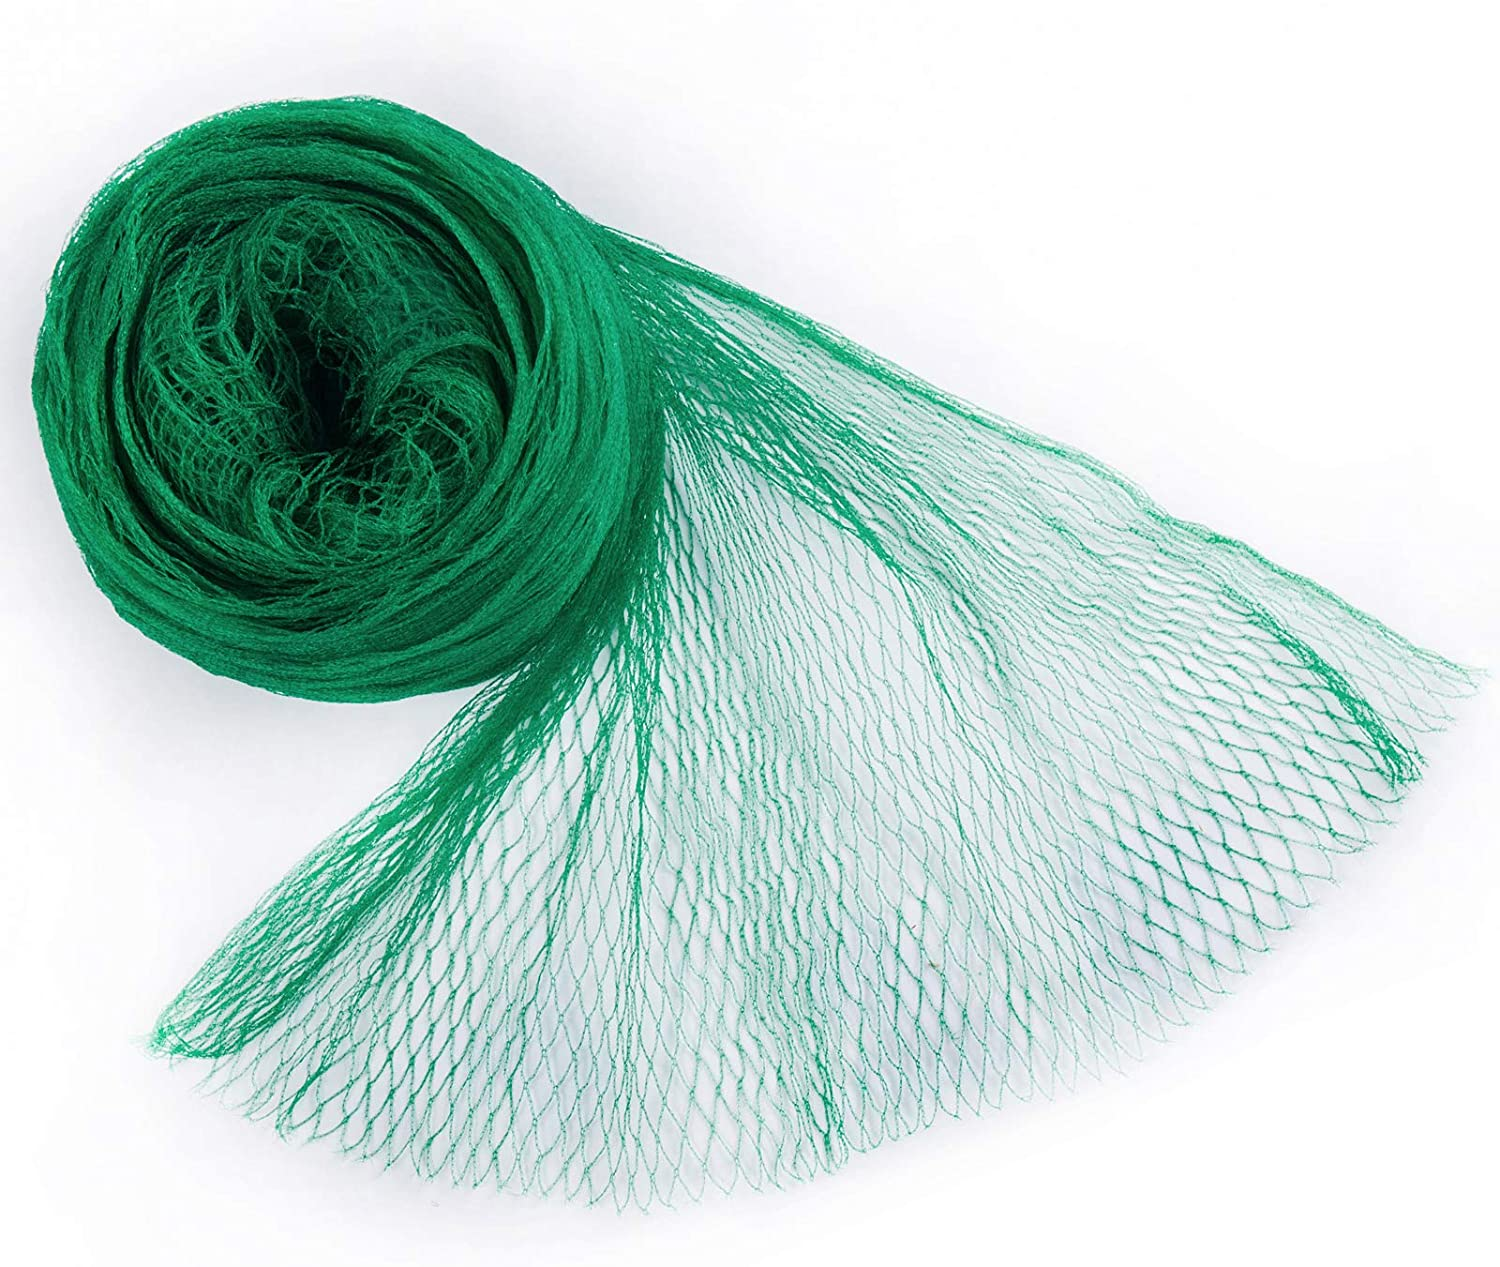 Coolrunner Anti-Bird Netting,16.4 X 13 FT Bird Net, Nylon Garden Netting with 100Pcs Cable Ties Protect Garden Farm Fruit and Vegetables from Birds, Deer(Green)